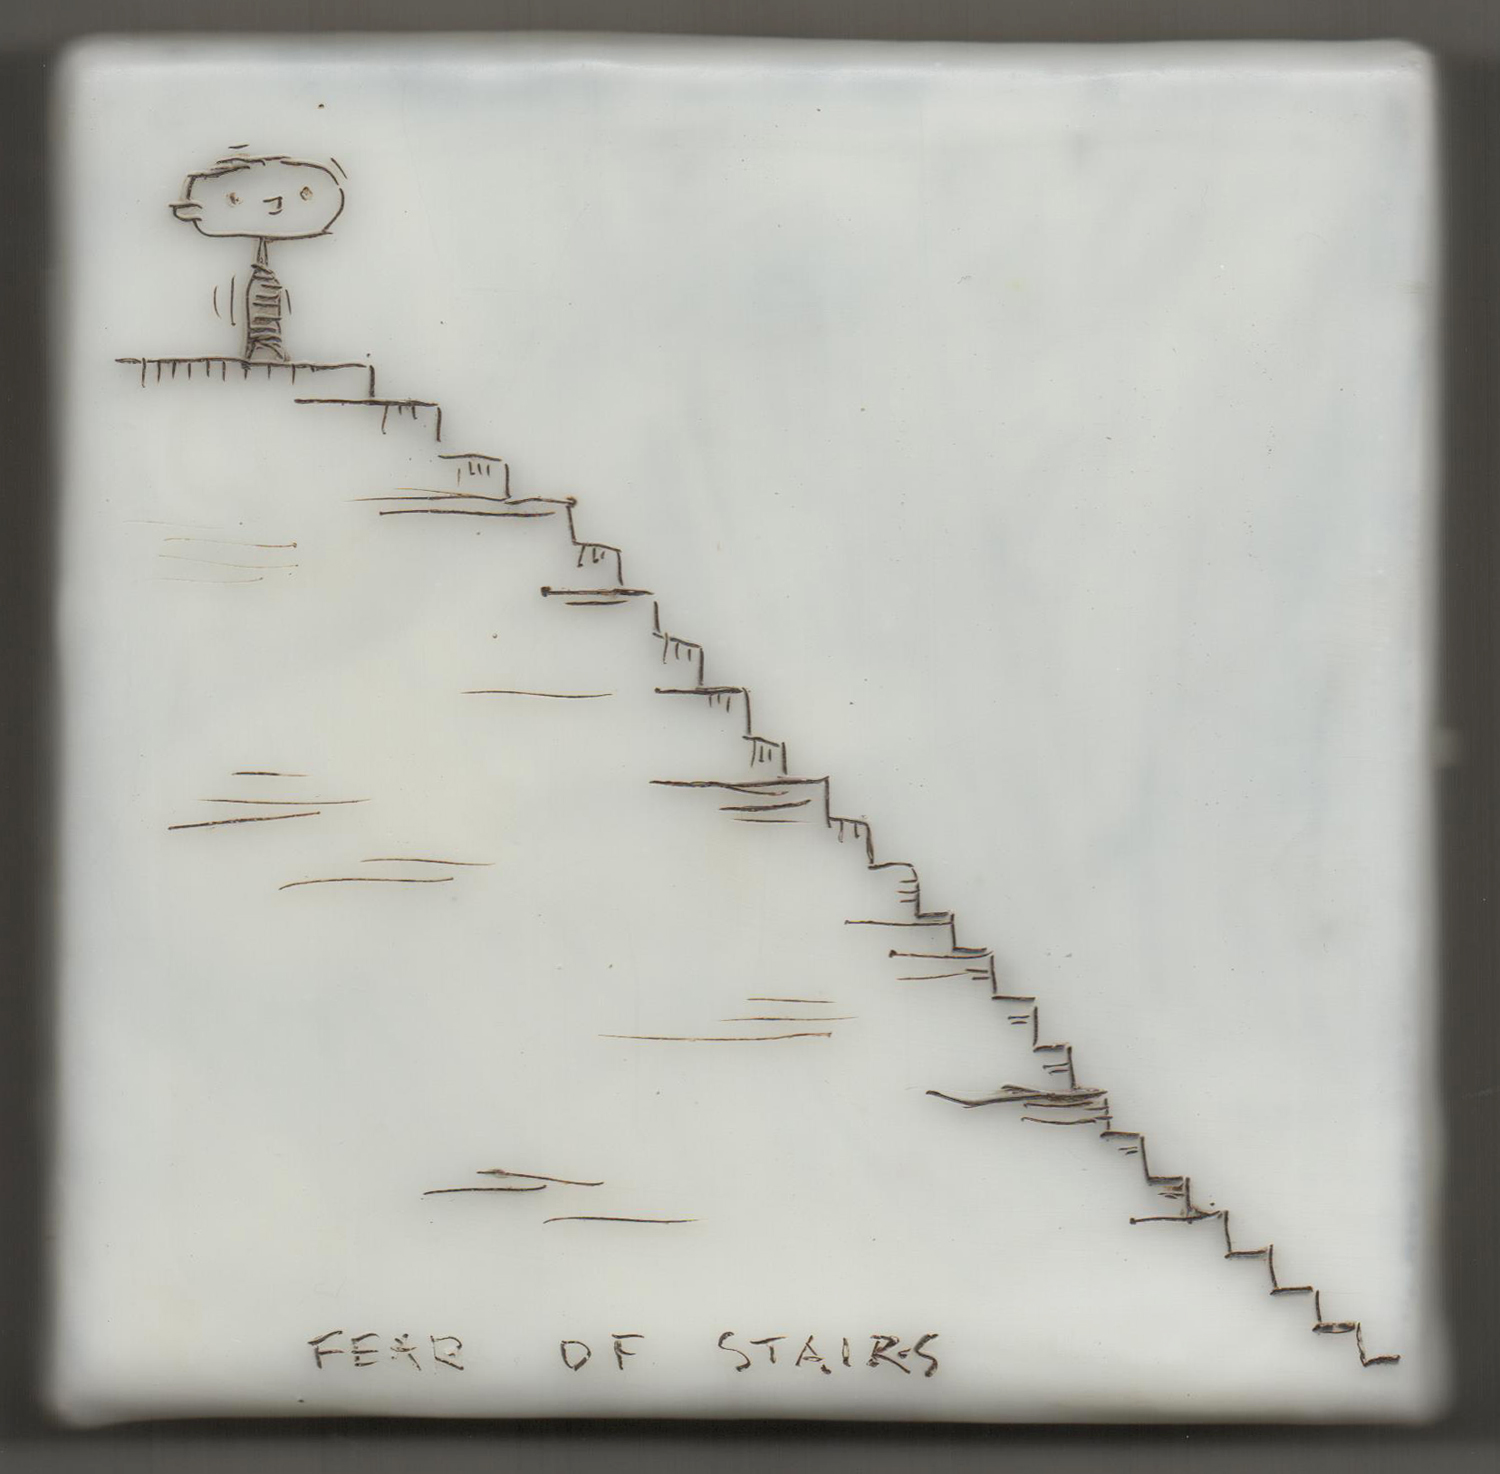 Fear of Stairs